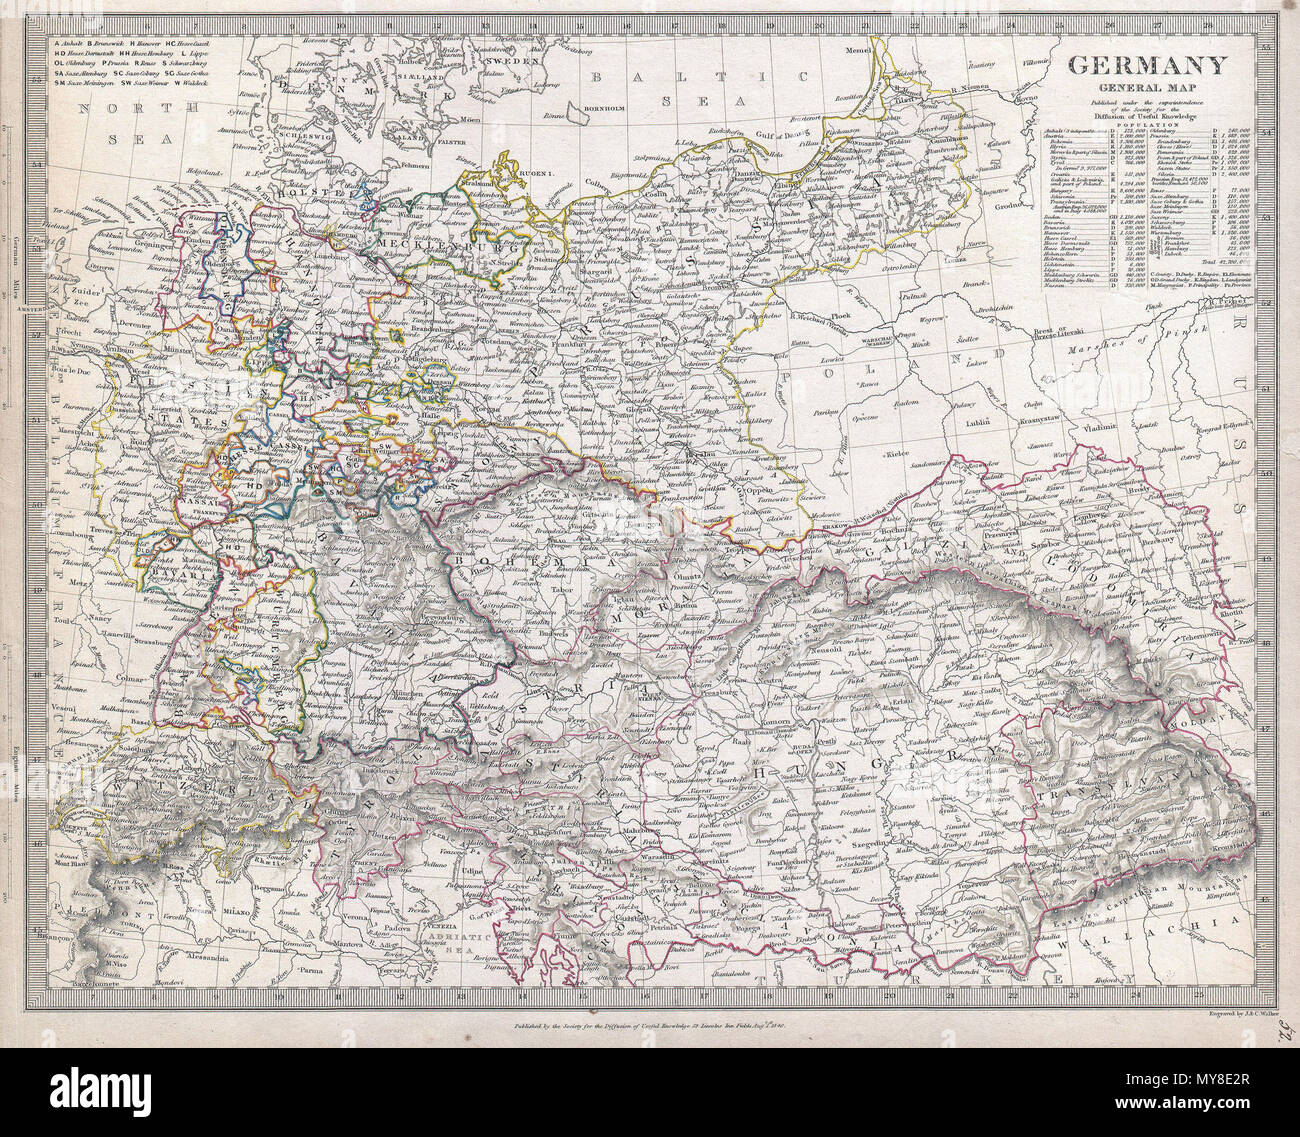 germany general map english this is the society for diffusion of useful knowledges attractive 1840 map of germany covers germany from the north sea to